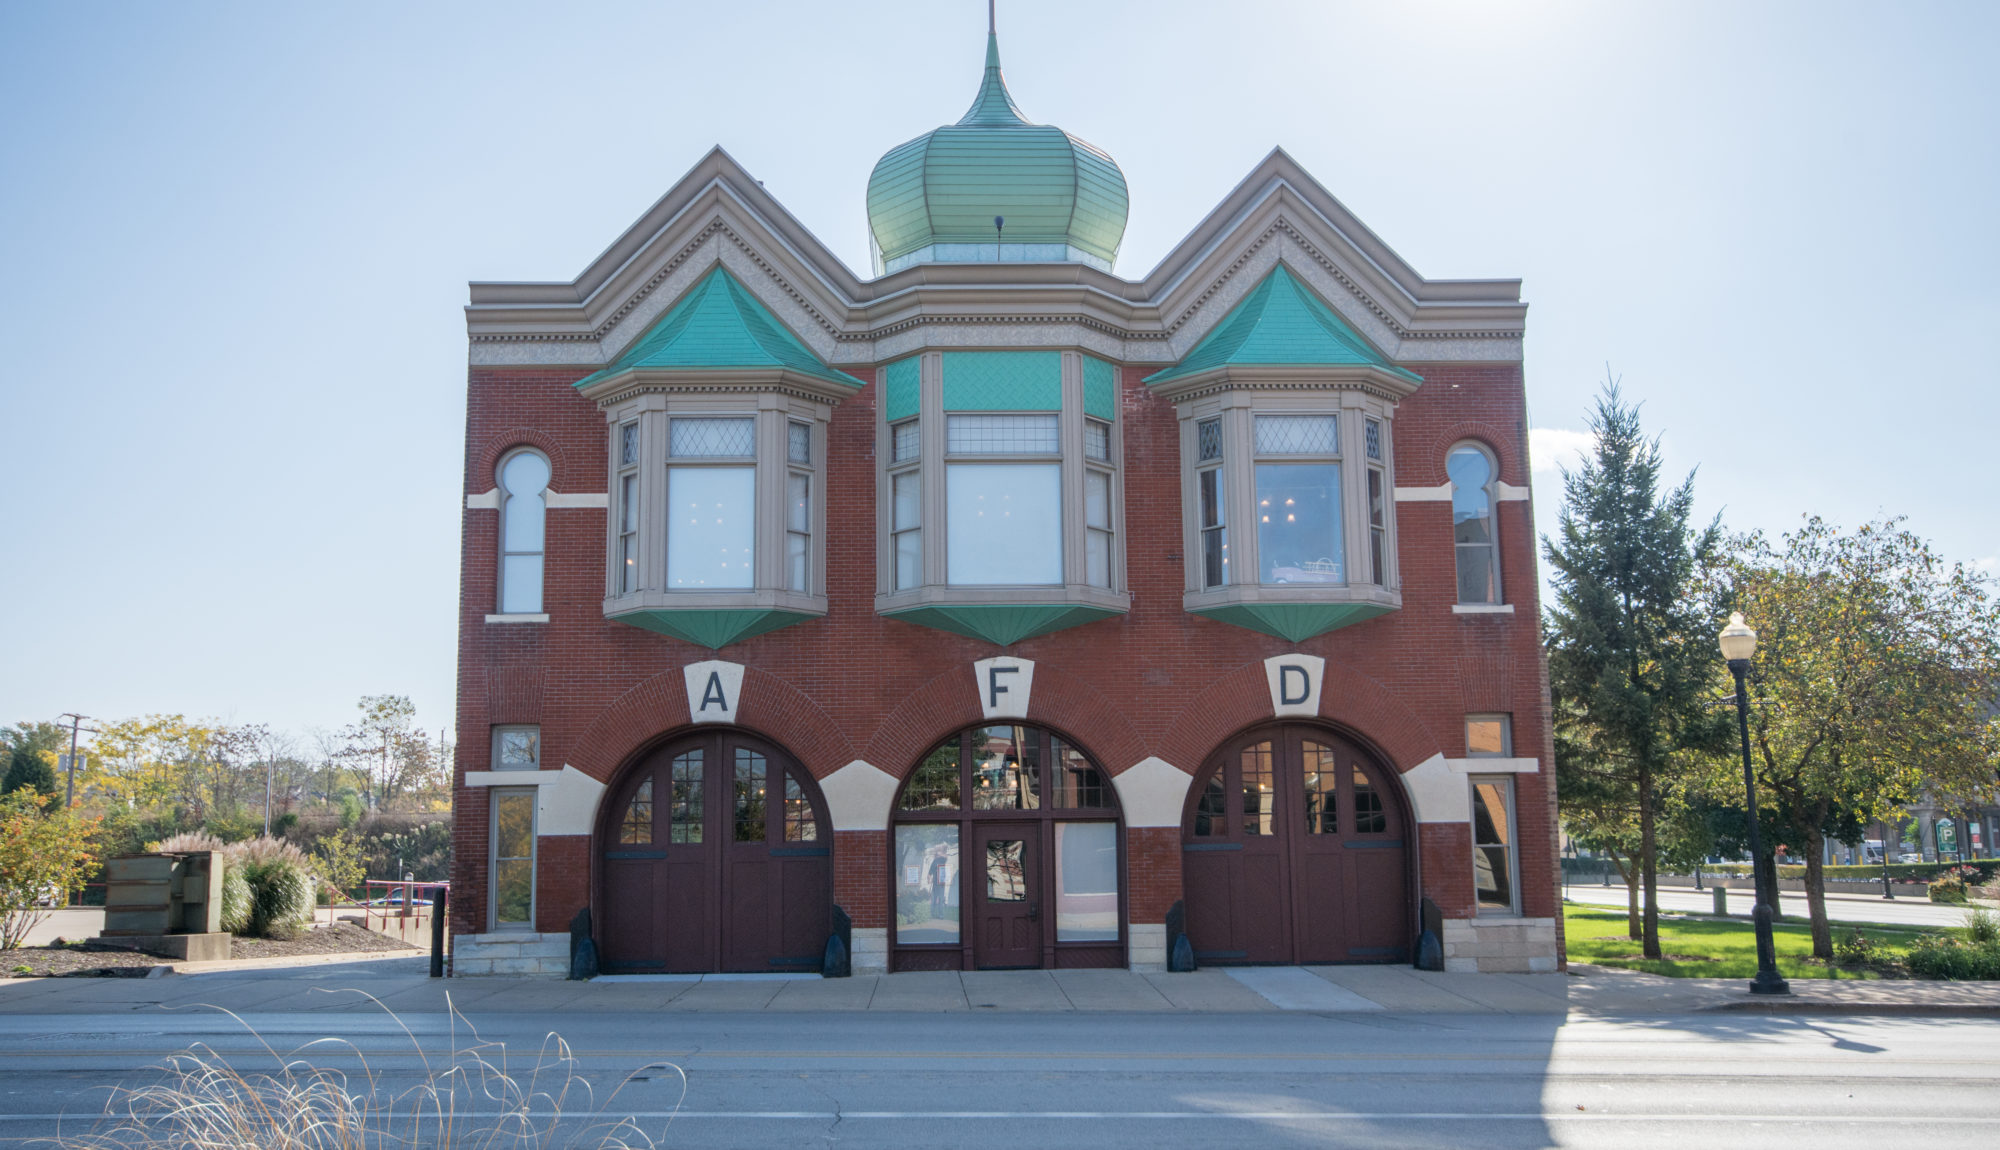 An image of the aurora regional fire museum building